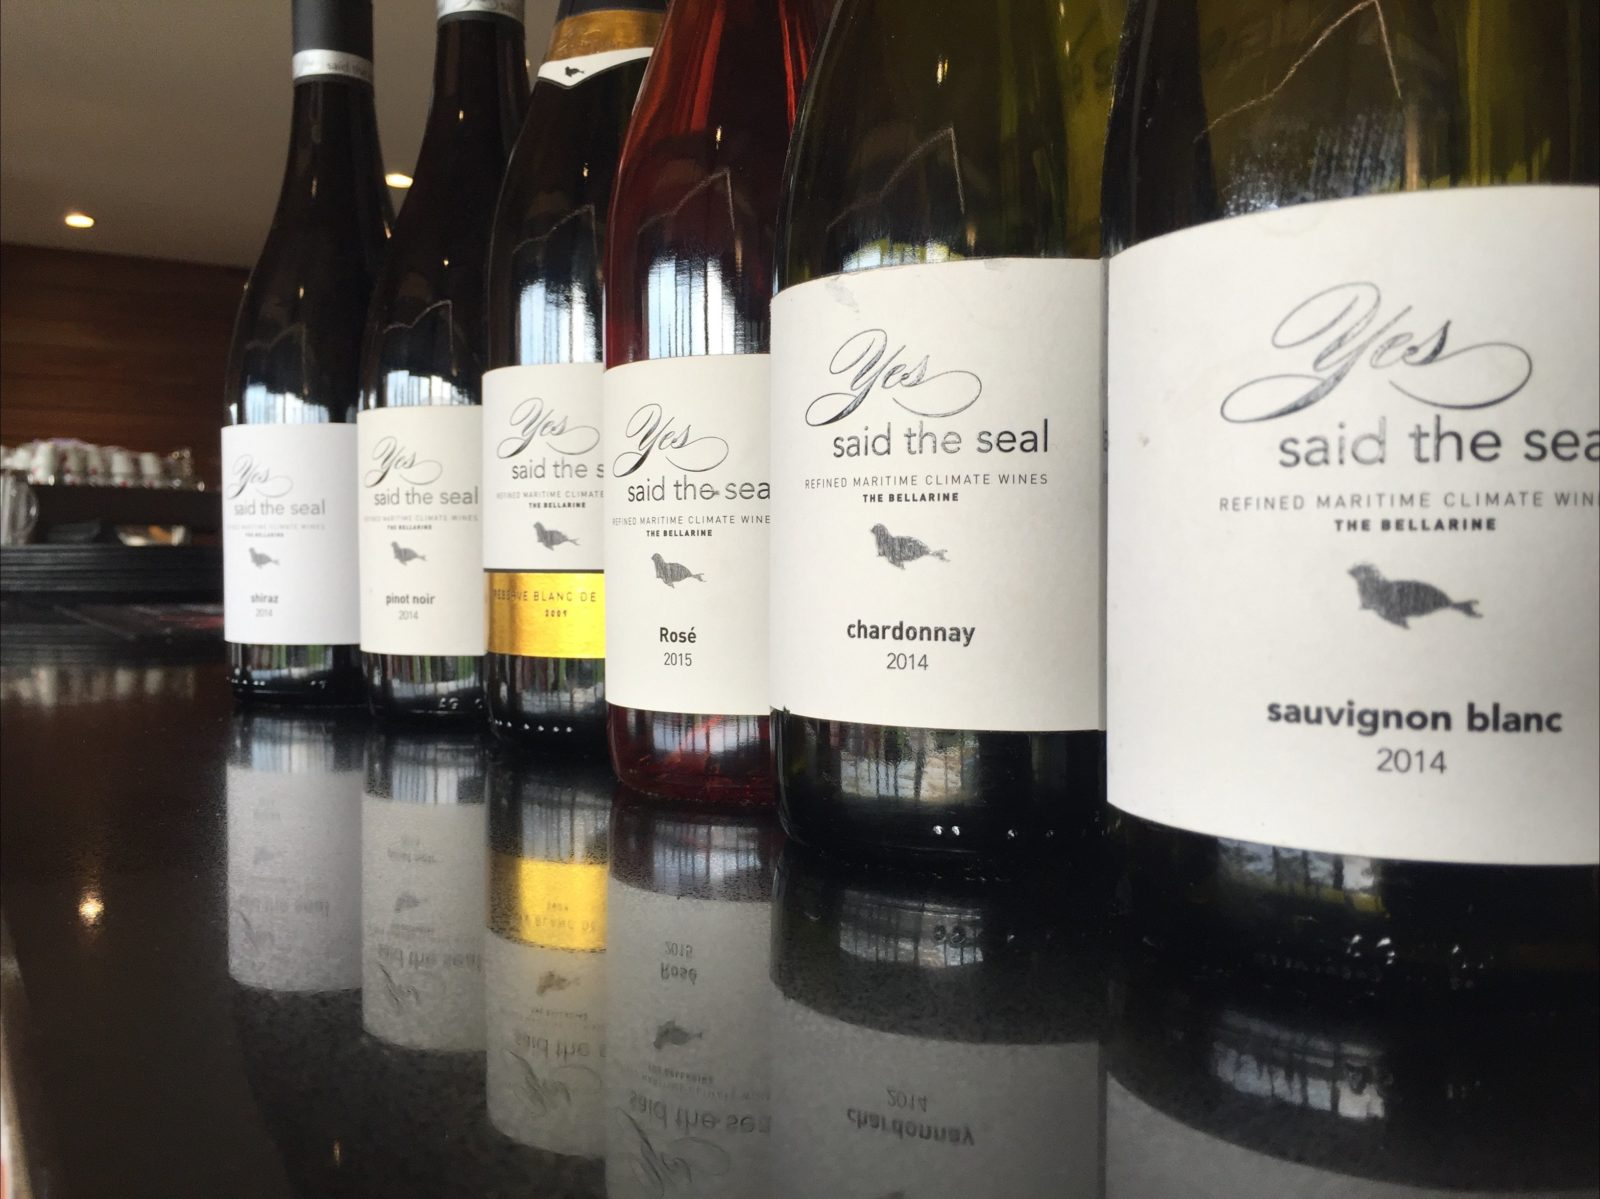 Yes Said the Seal Refined Maritime Climate Wines. The Bellarine